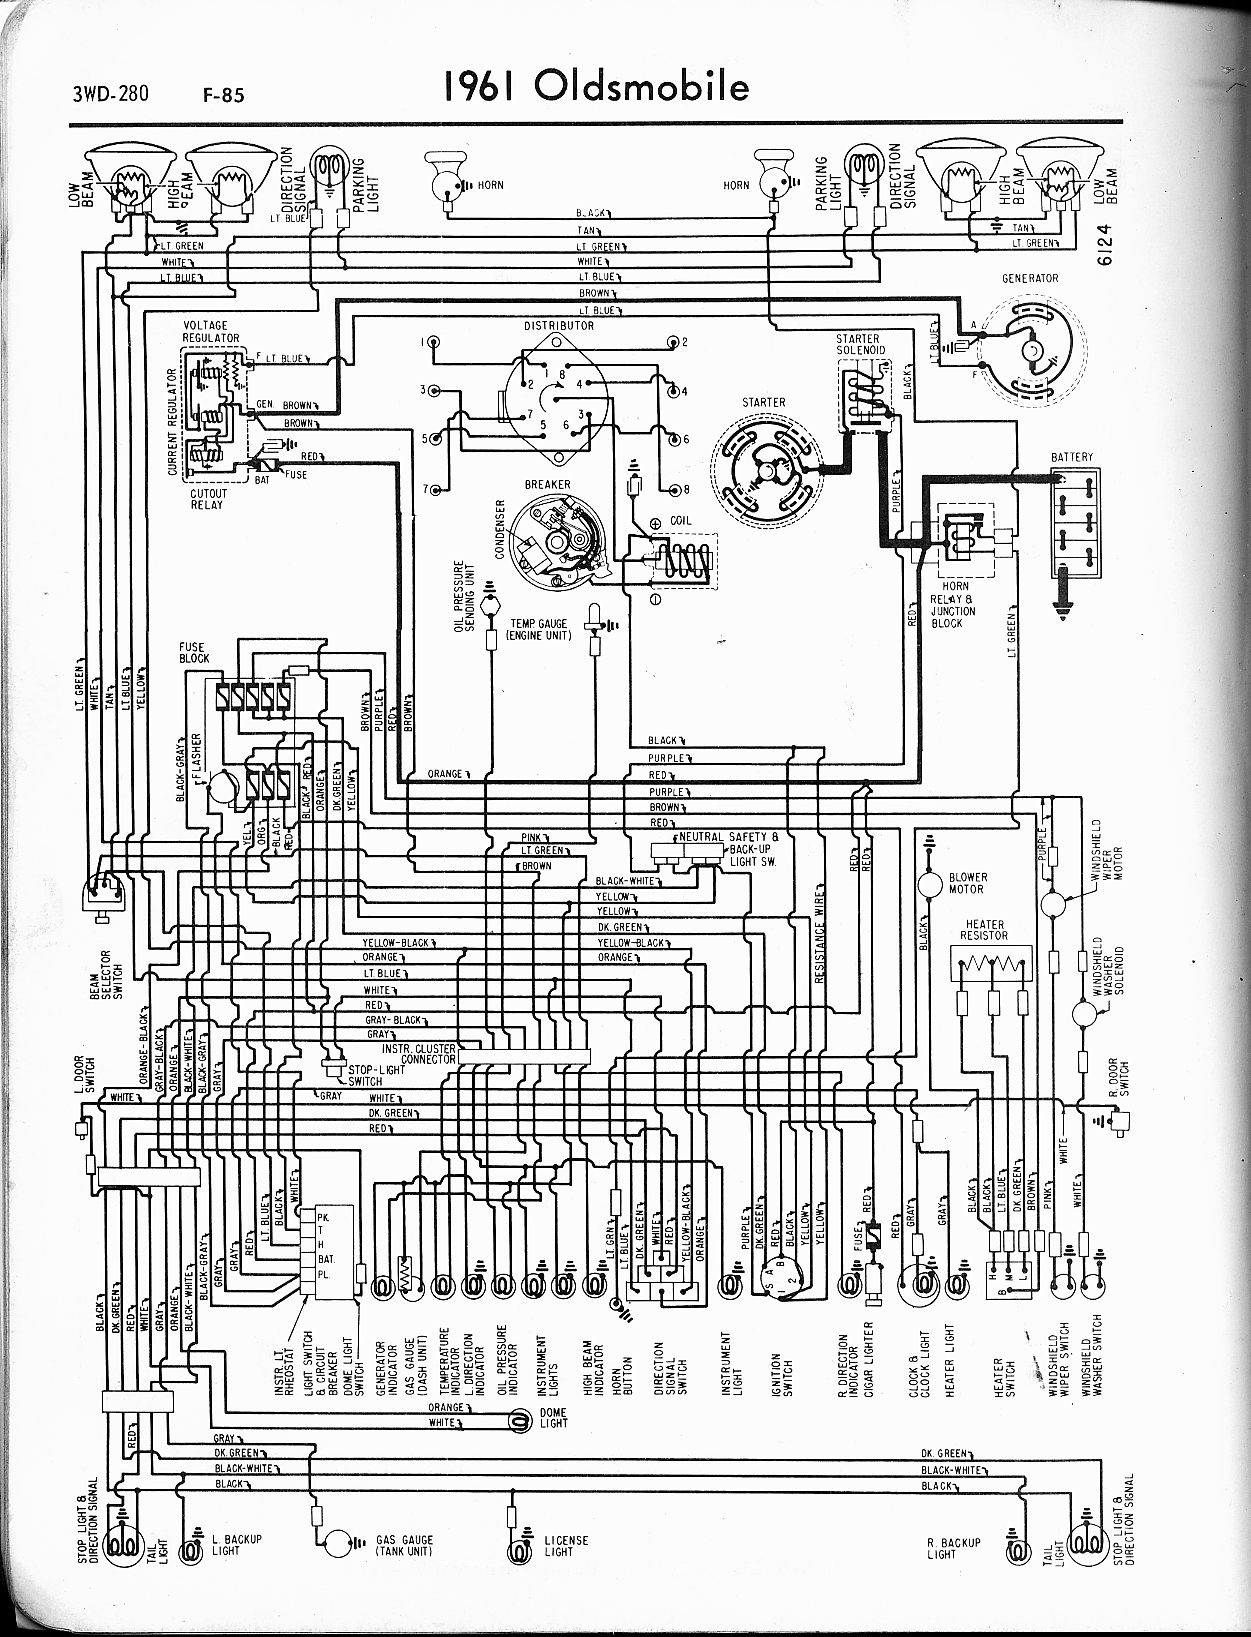 MWire5765 280 oldsmobile wiring diagrams the old car manual project 1967 olds 442 wiring diagram at soozxer.org